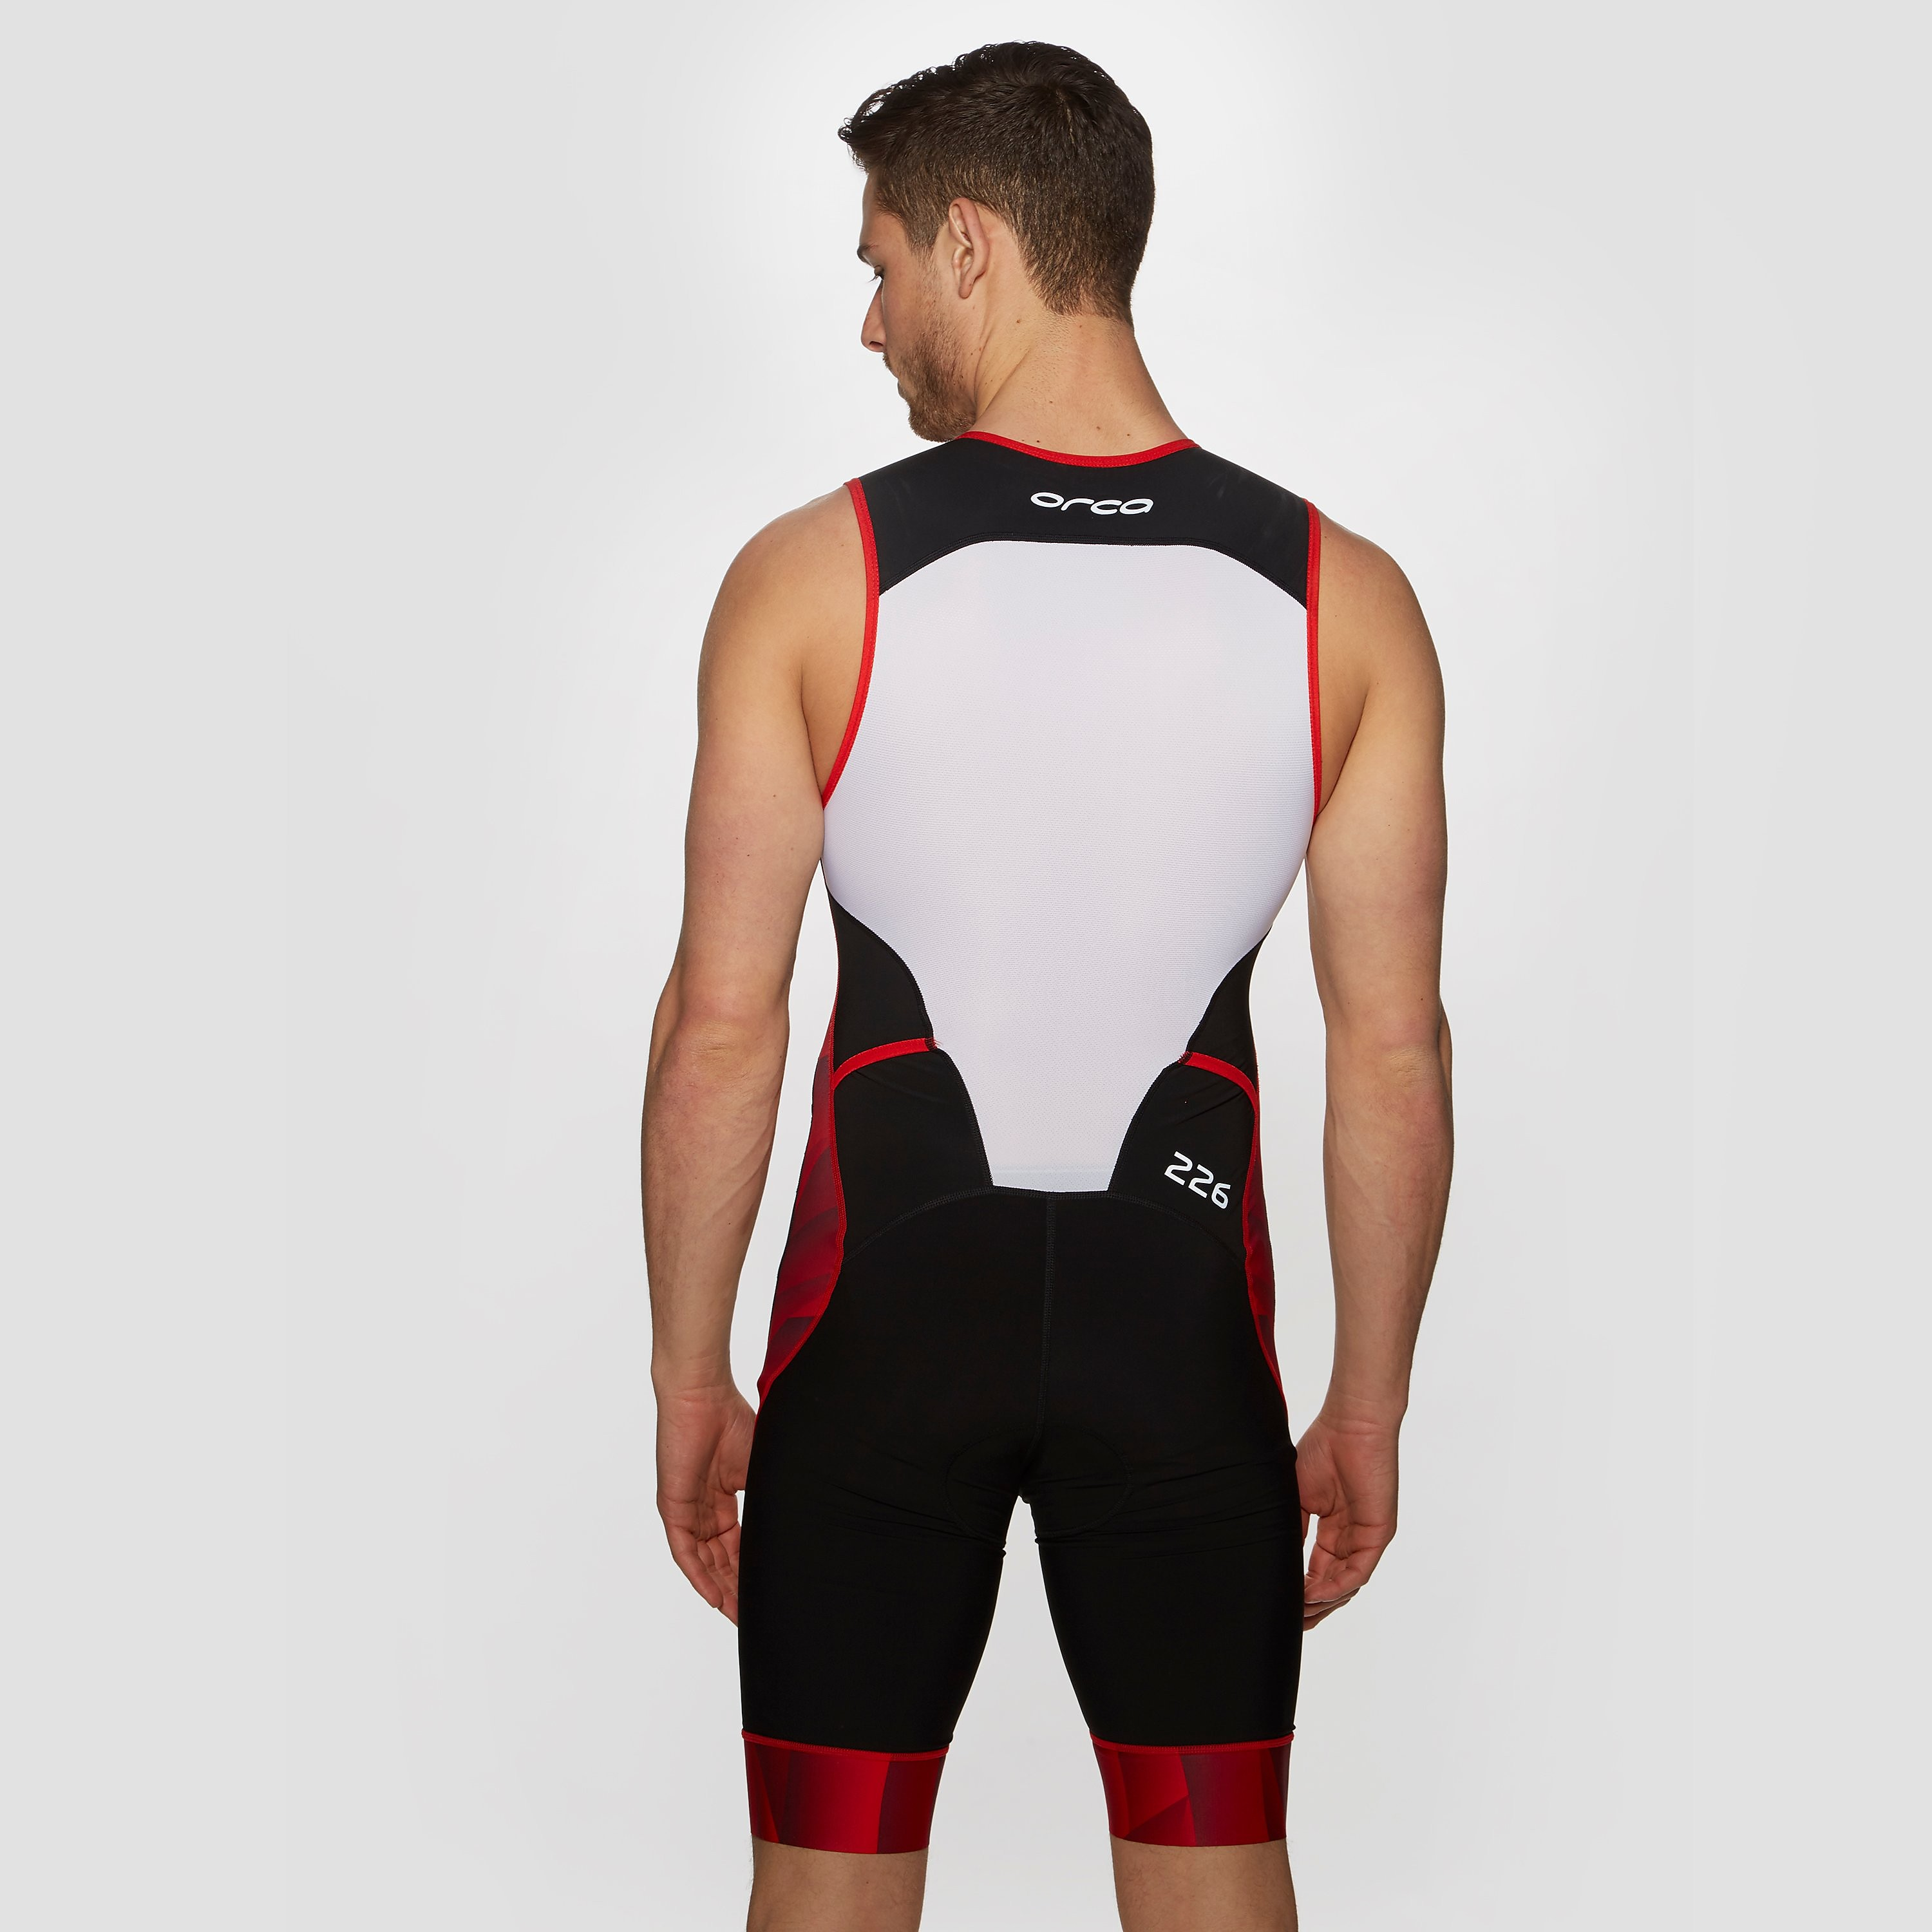 Orca Core Race Men's Triathlon Suit